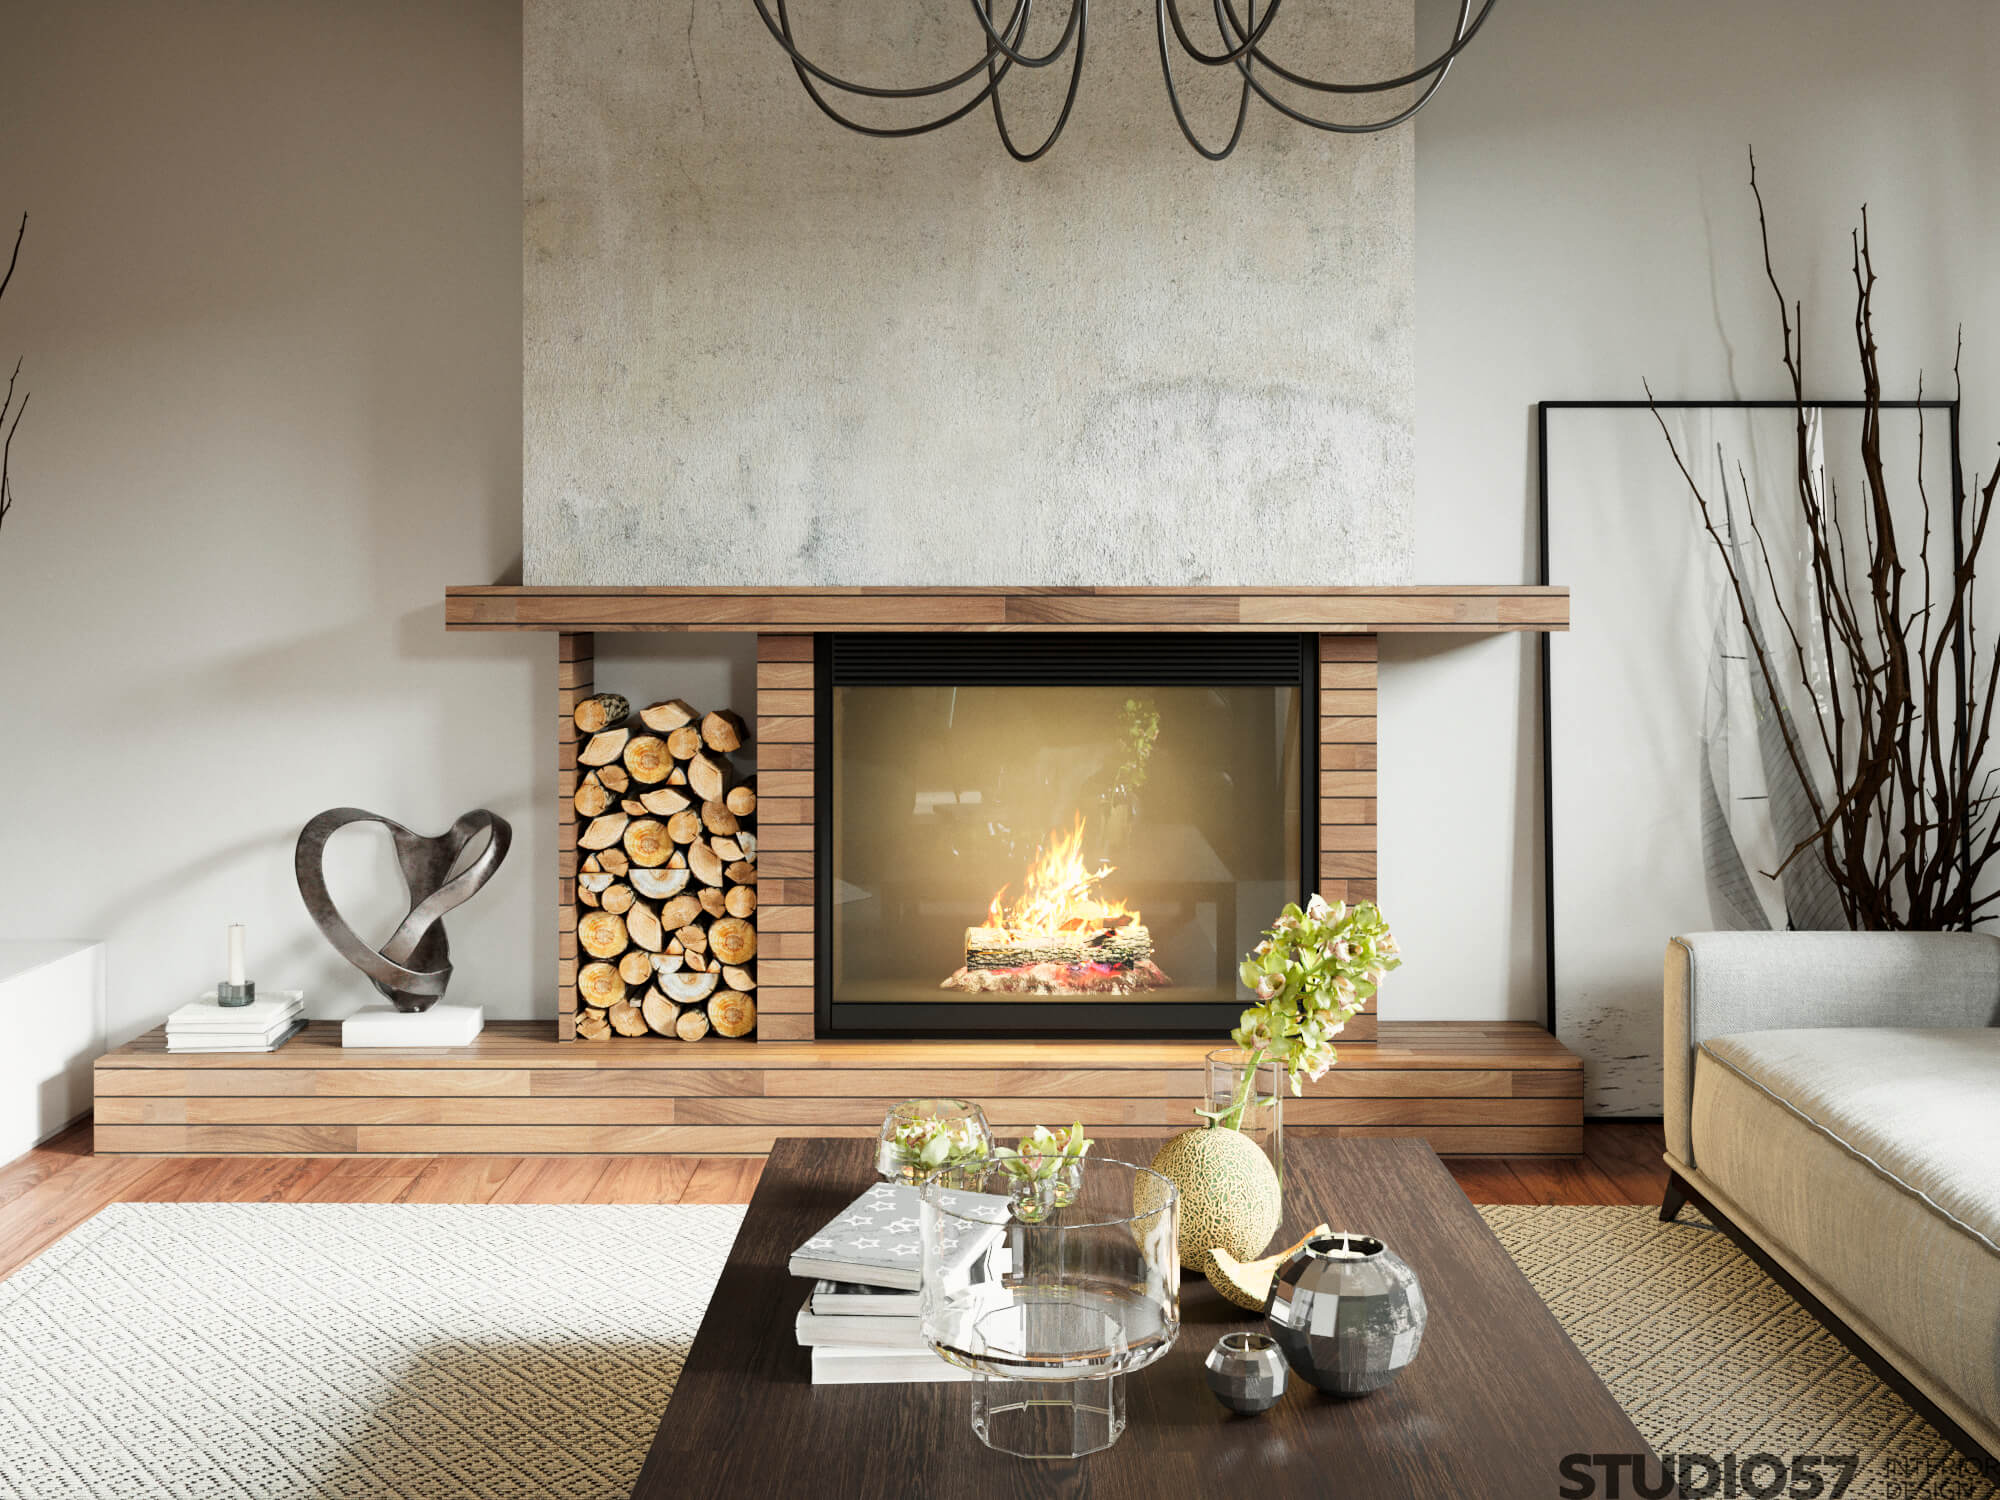 Fireplace in the living room of a private house